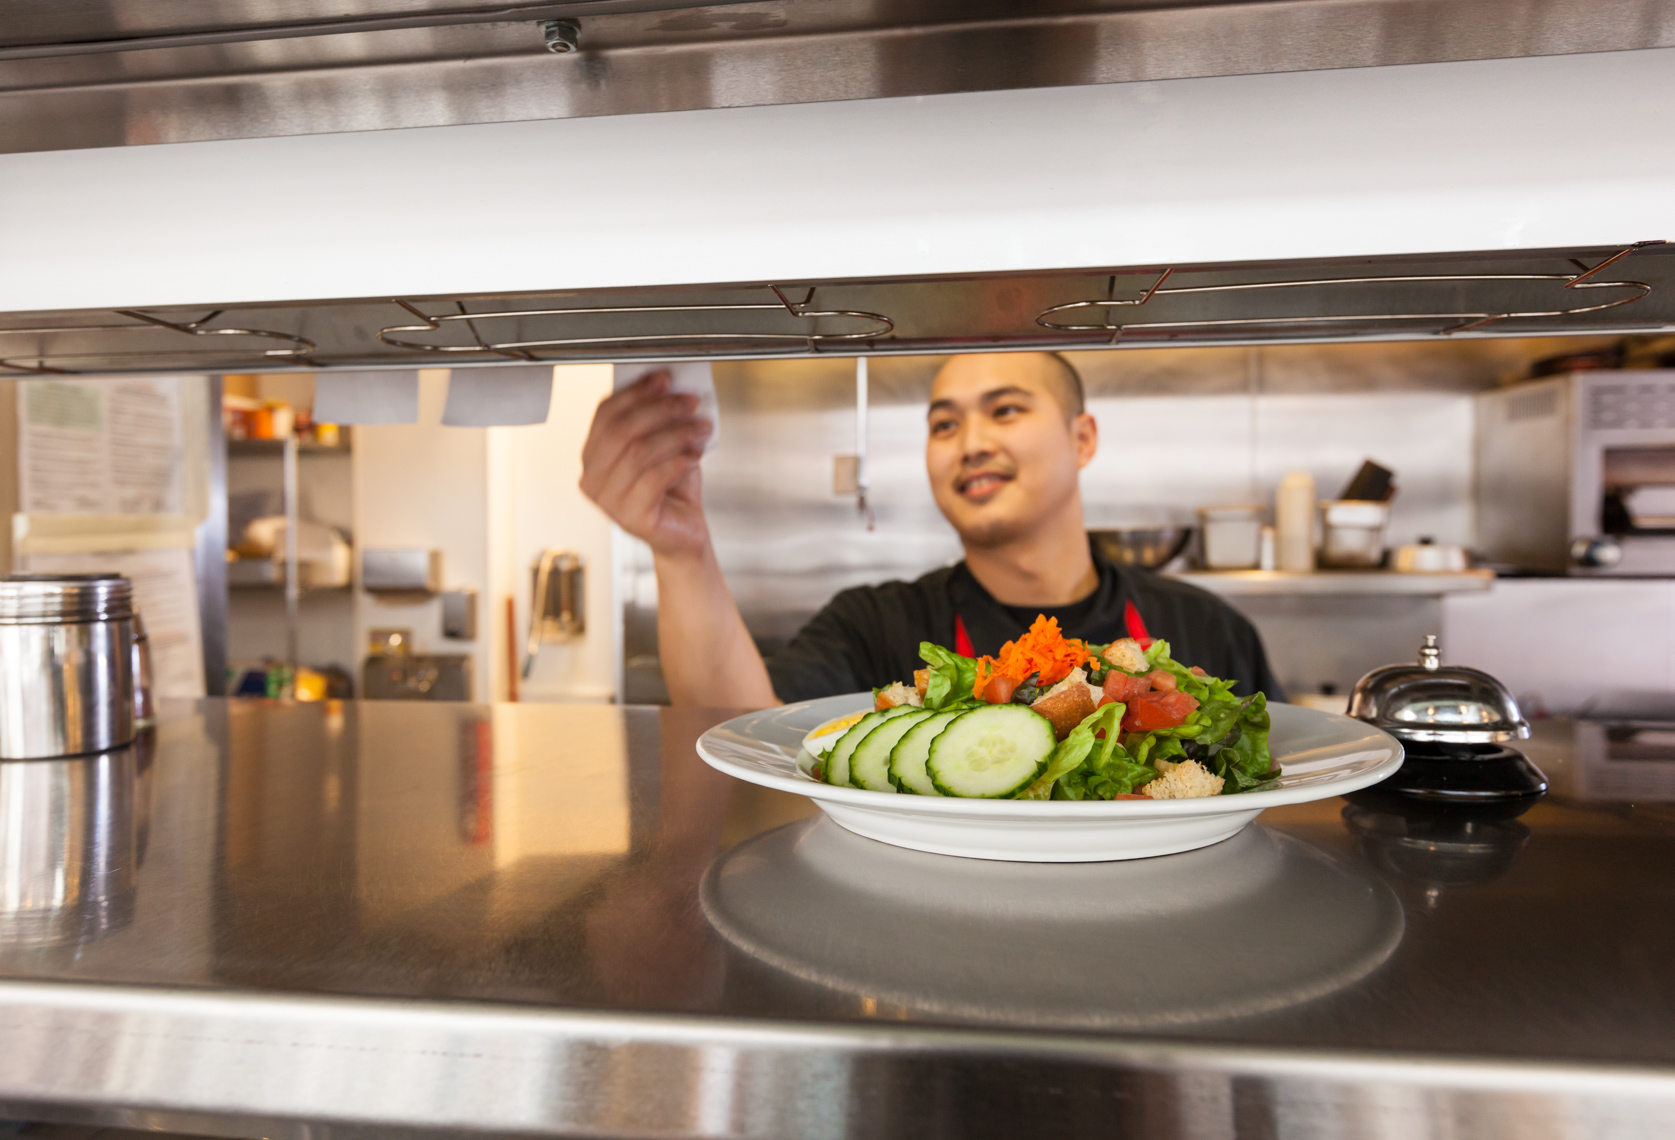 Happy young Asian man chef cooking working preparing food in restaurant kitchen